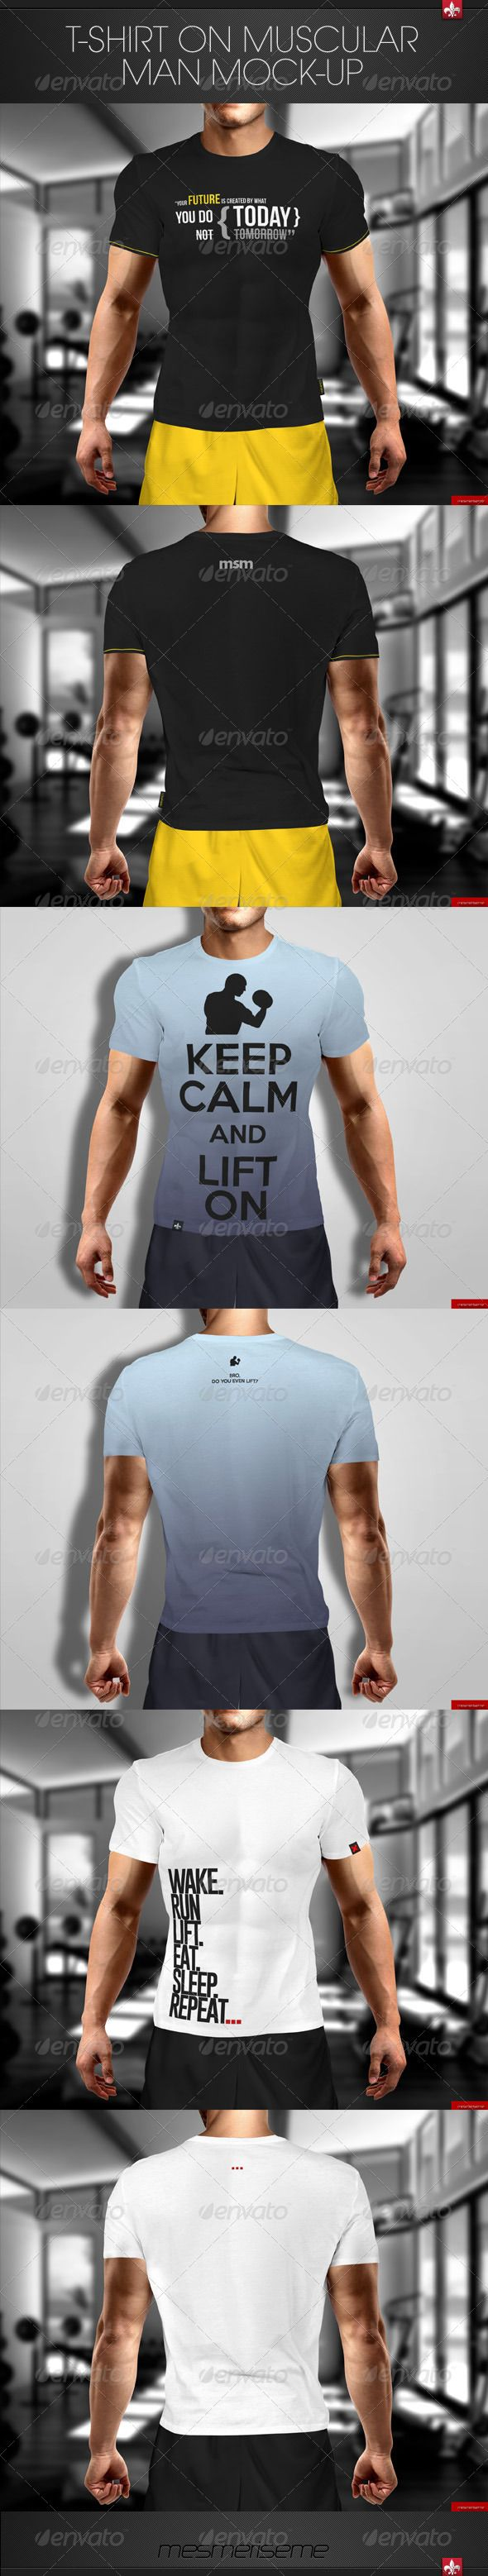 Tshirt on Muscular Man Mockup — Photoshop PSD #muscle #training • Available here → https://graphicriver.net/item/tshirt-on-muscular-man-mockup/7577722?ref=pxcr